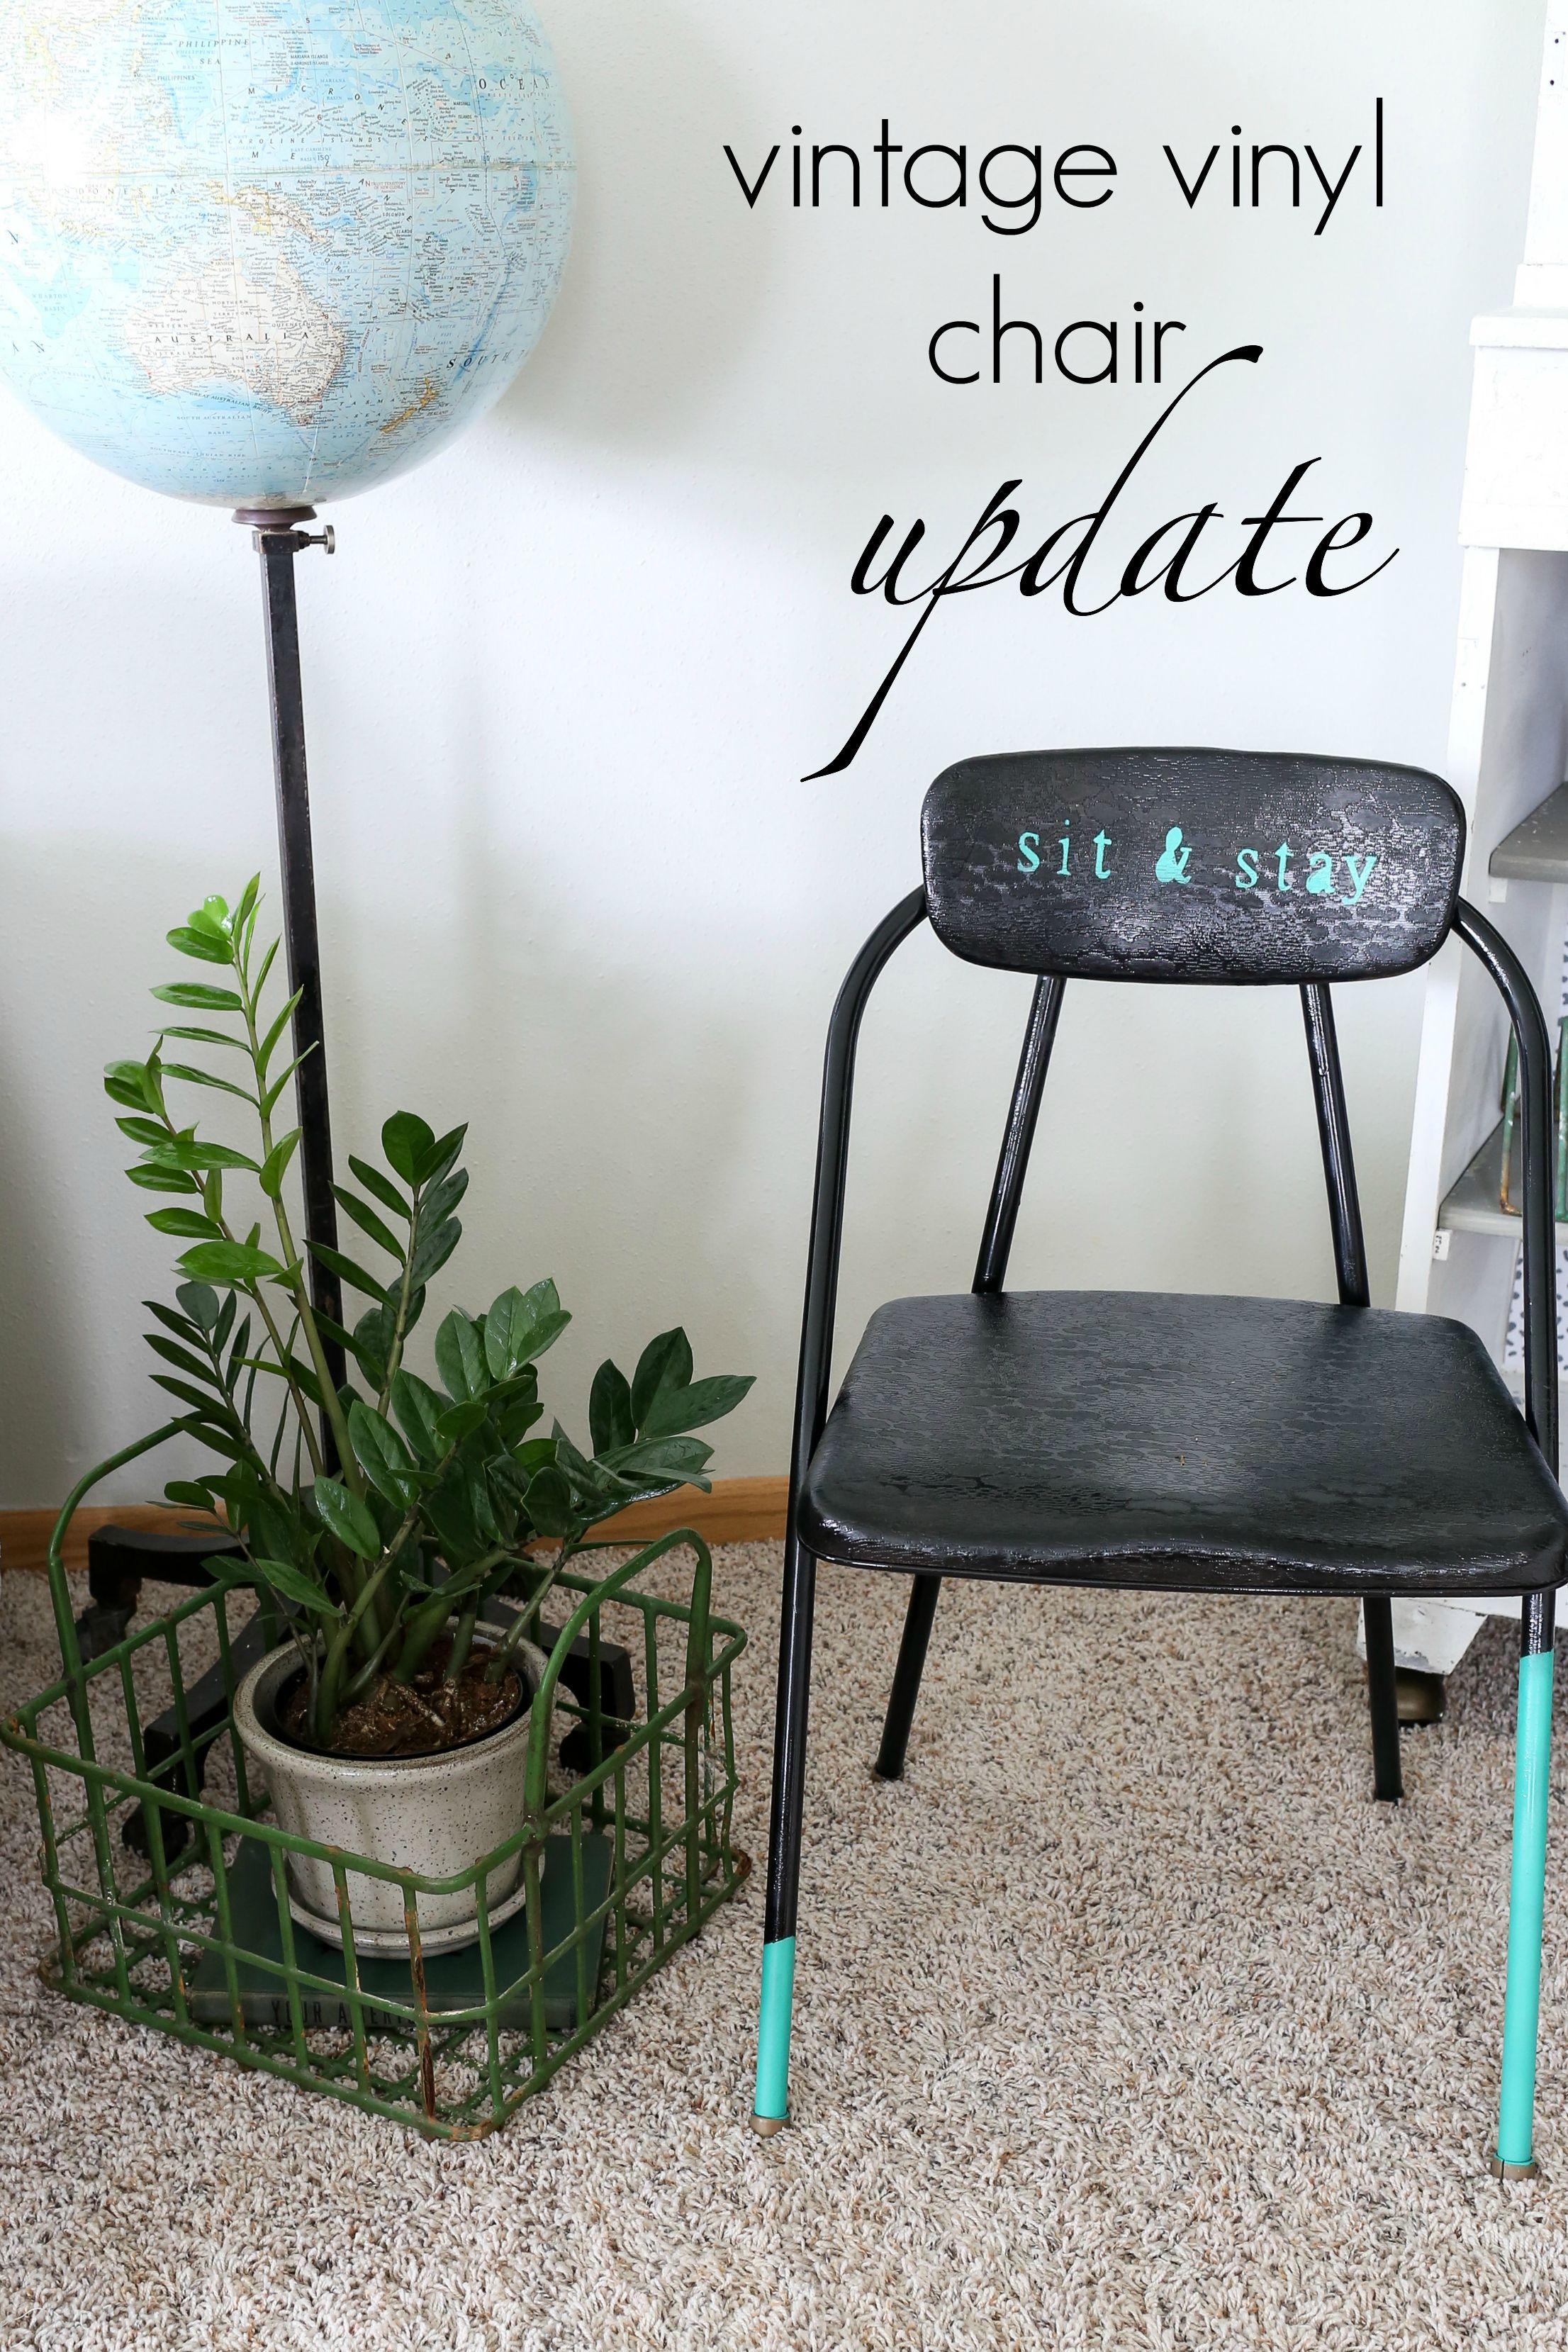 Take a vintage vinyl folding chair and update it with this quick